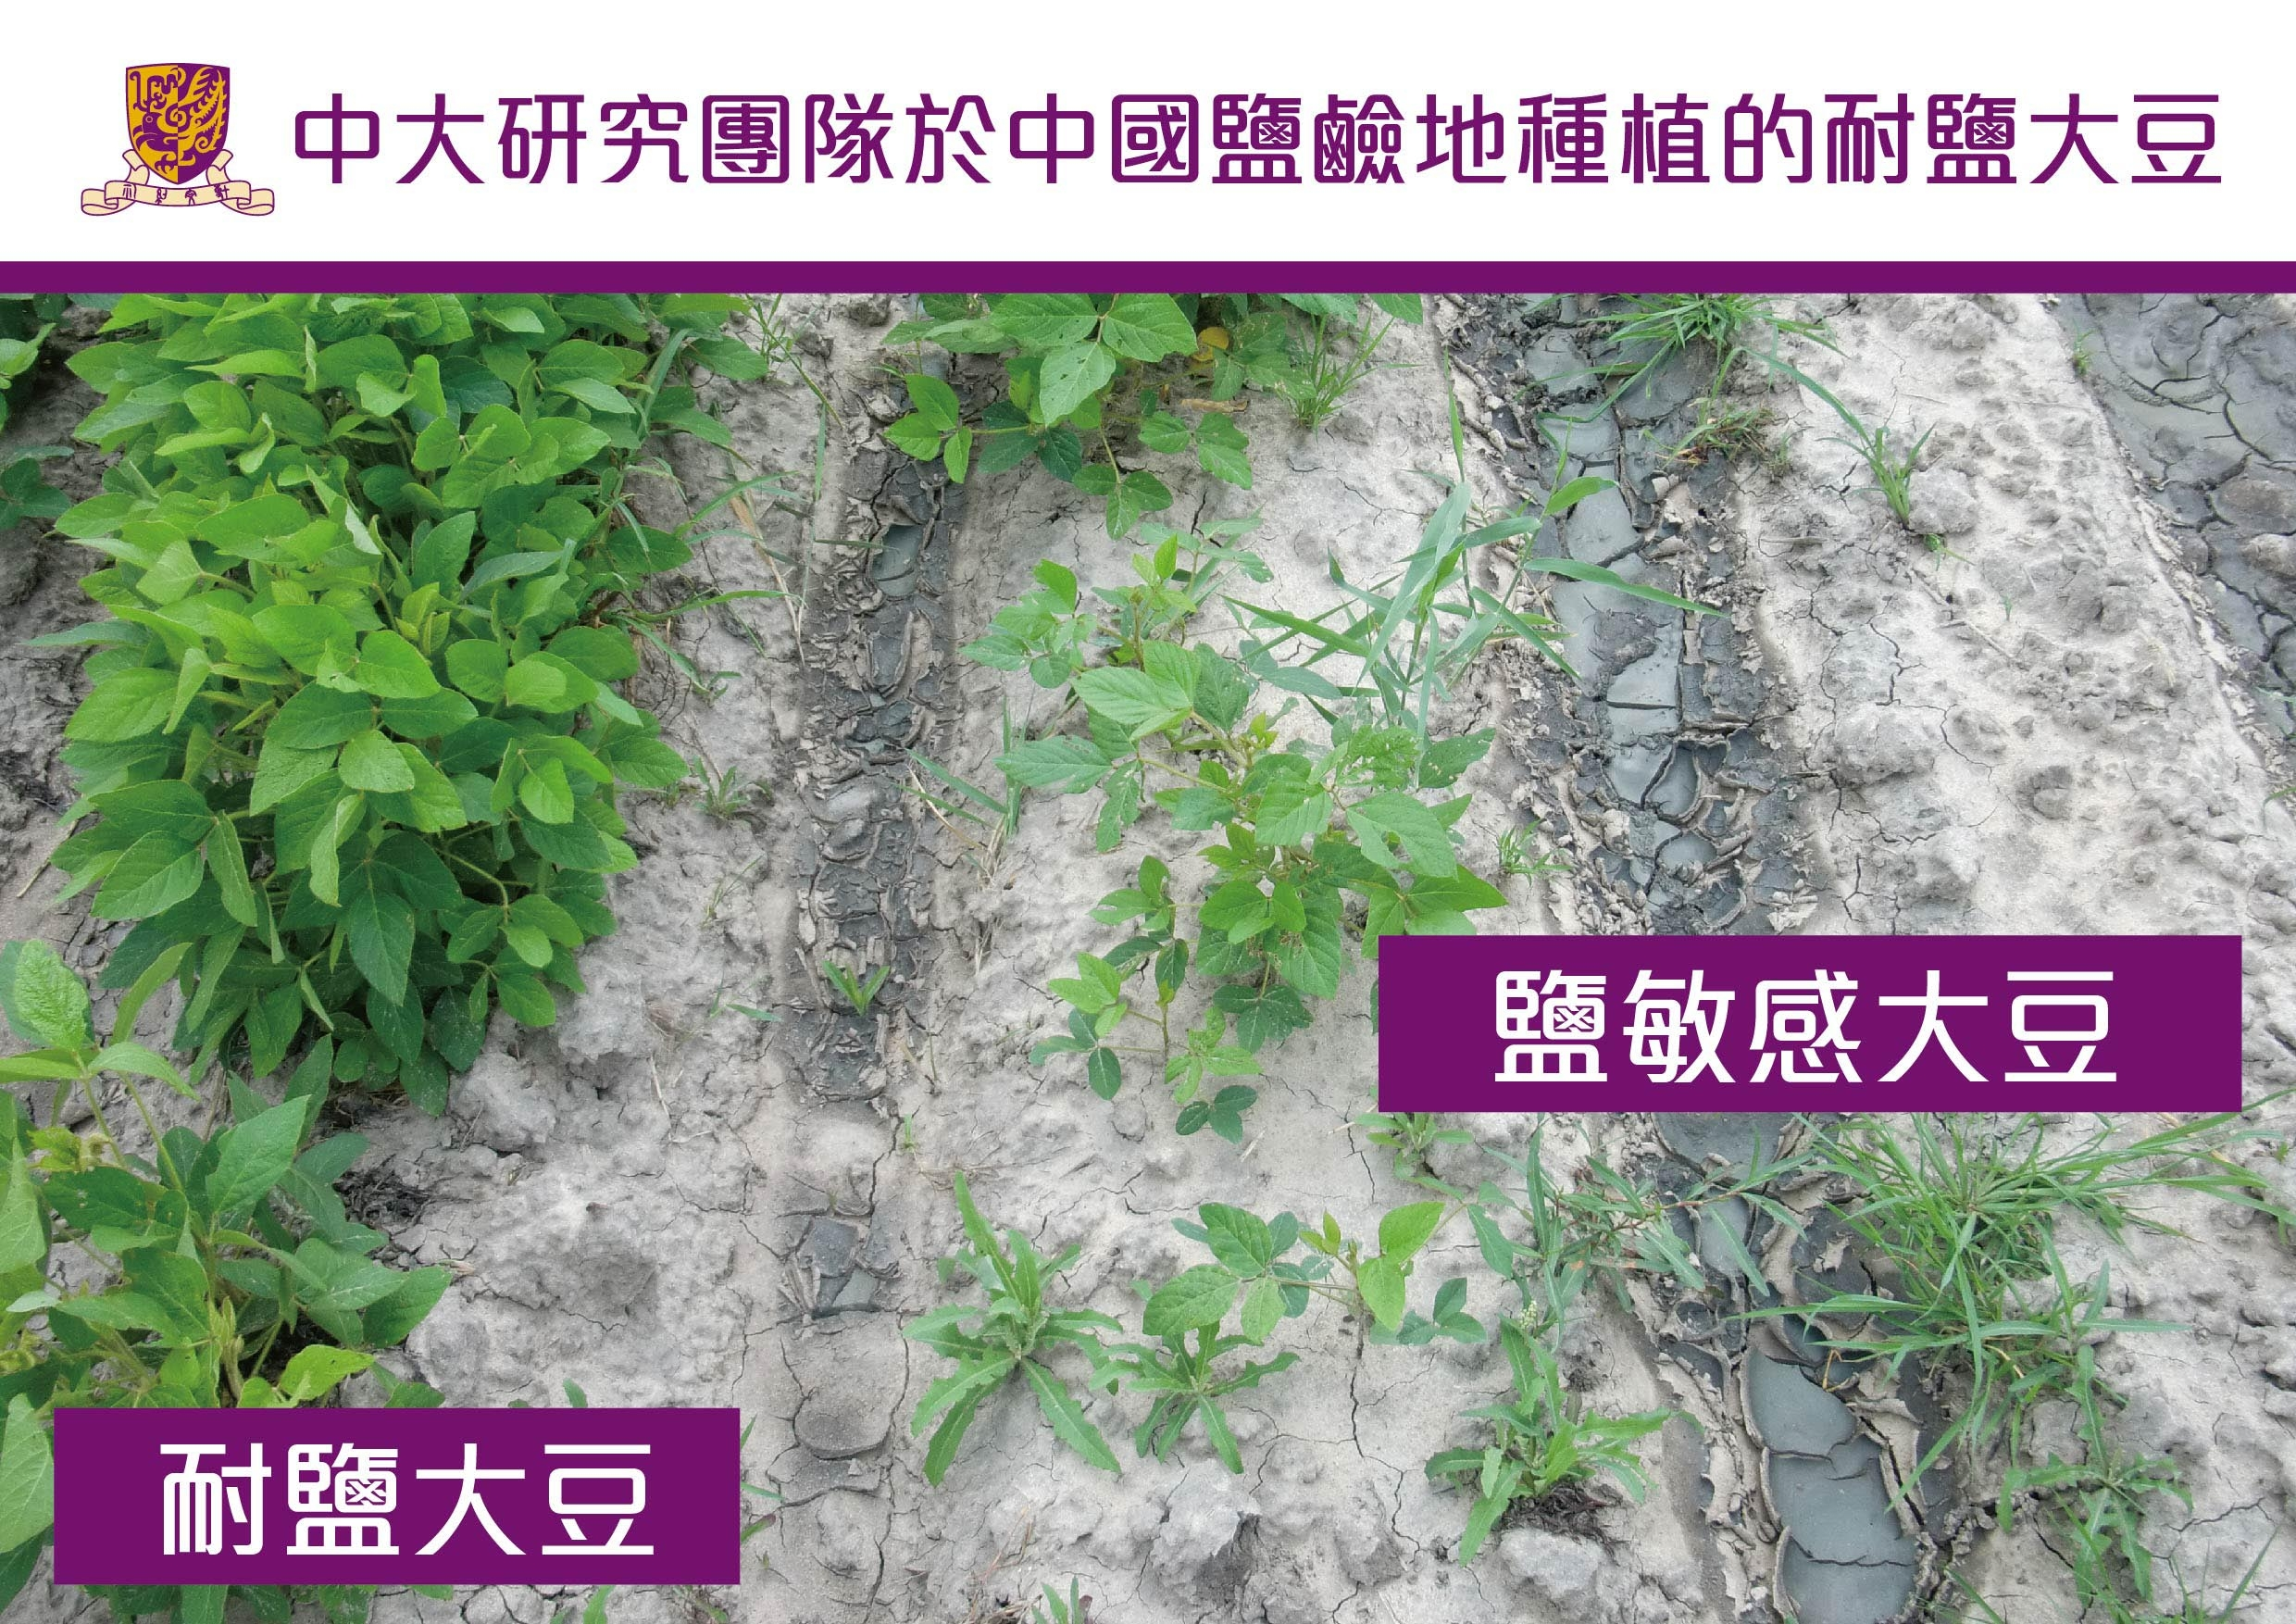 Salt tolerant soybean and salt sensitive soybean tested on saline lands in China.